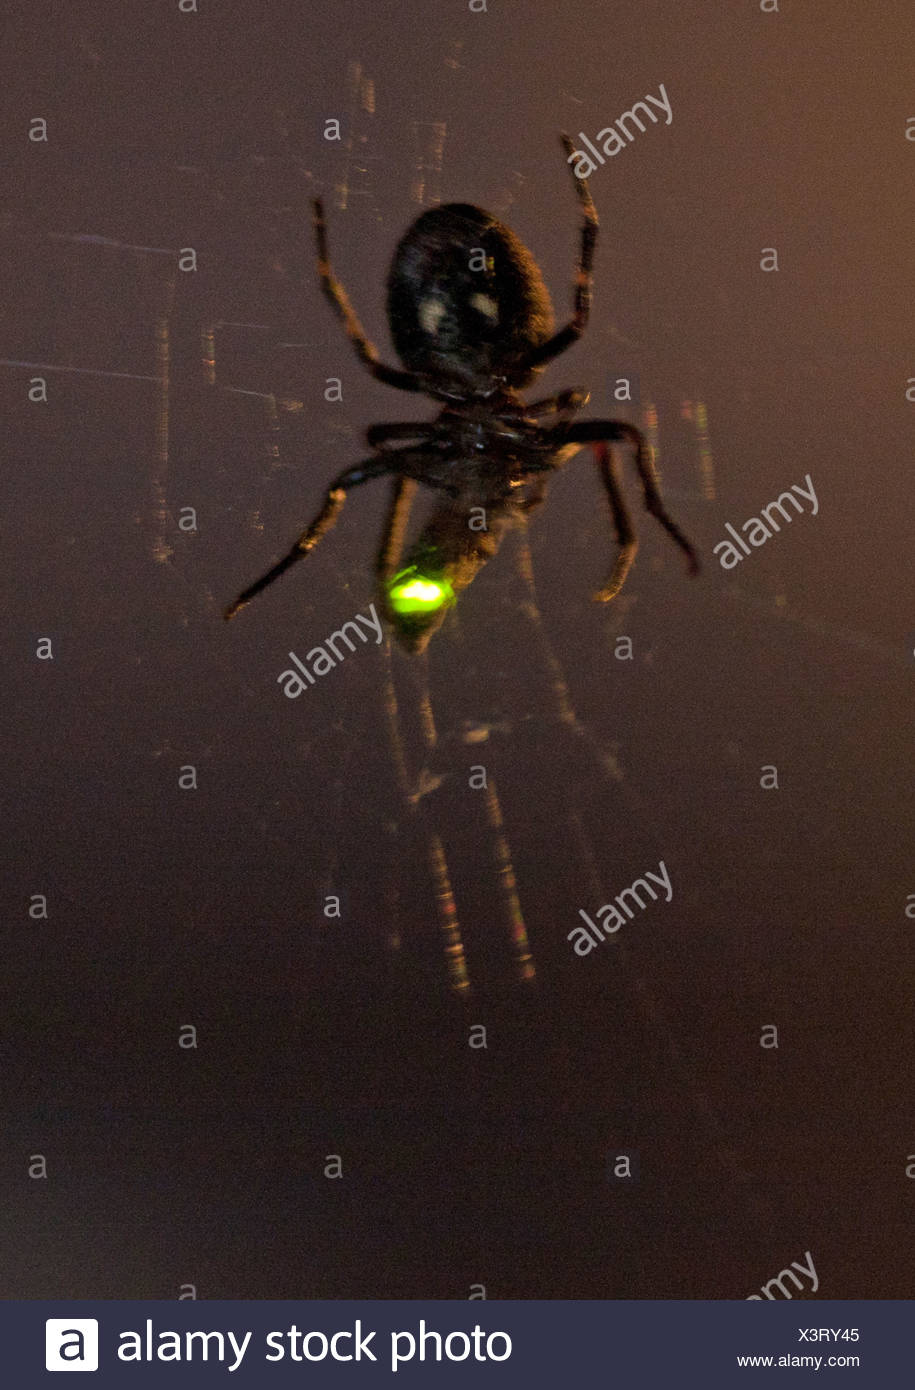 glowworms, fireflies, lightning bugs (Lampyridae), spider in its web at night with caught lightning beetle, Germany - Stock Image